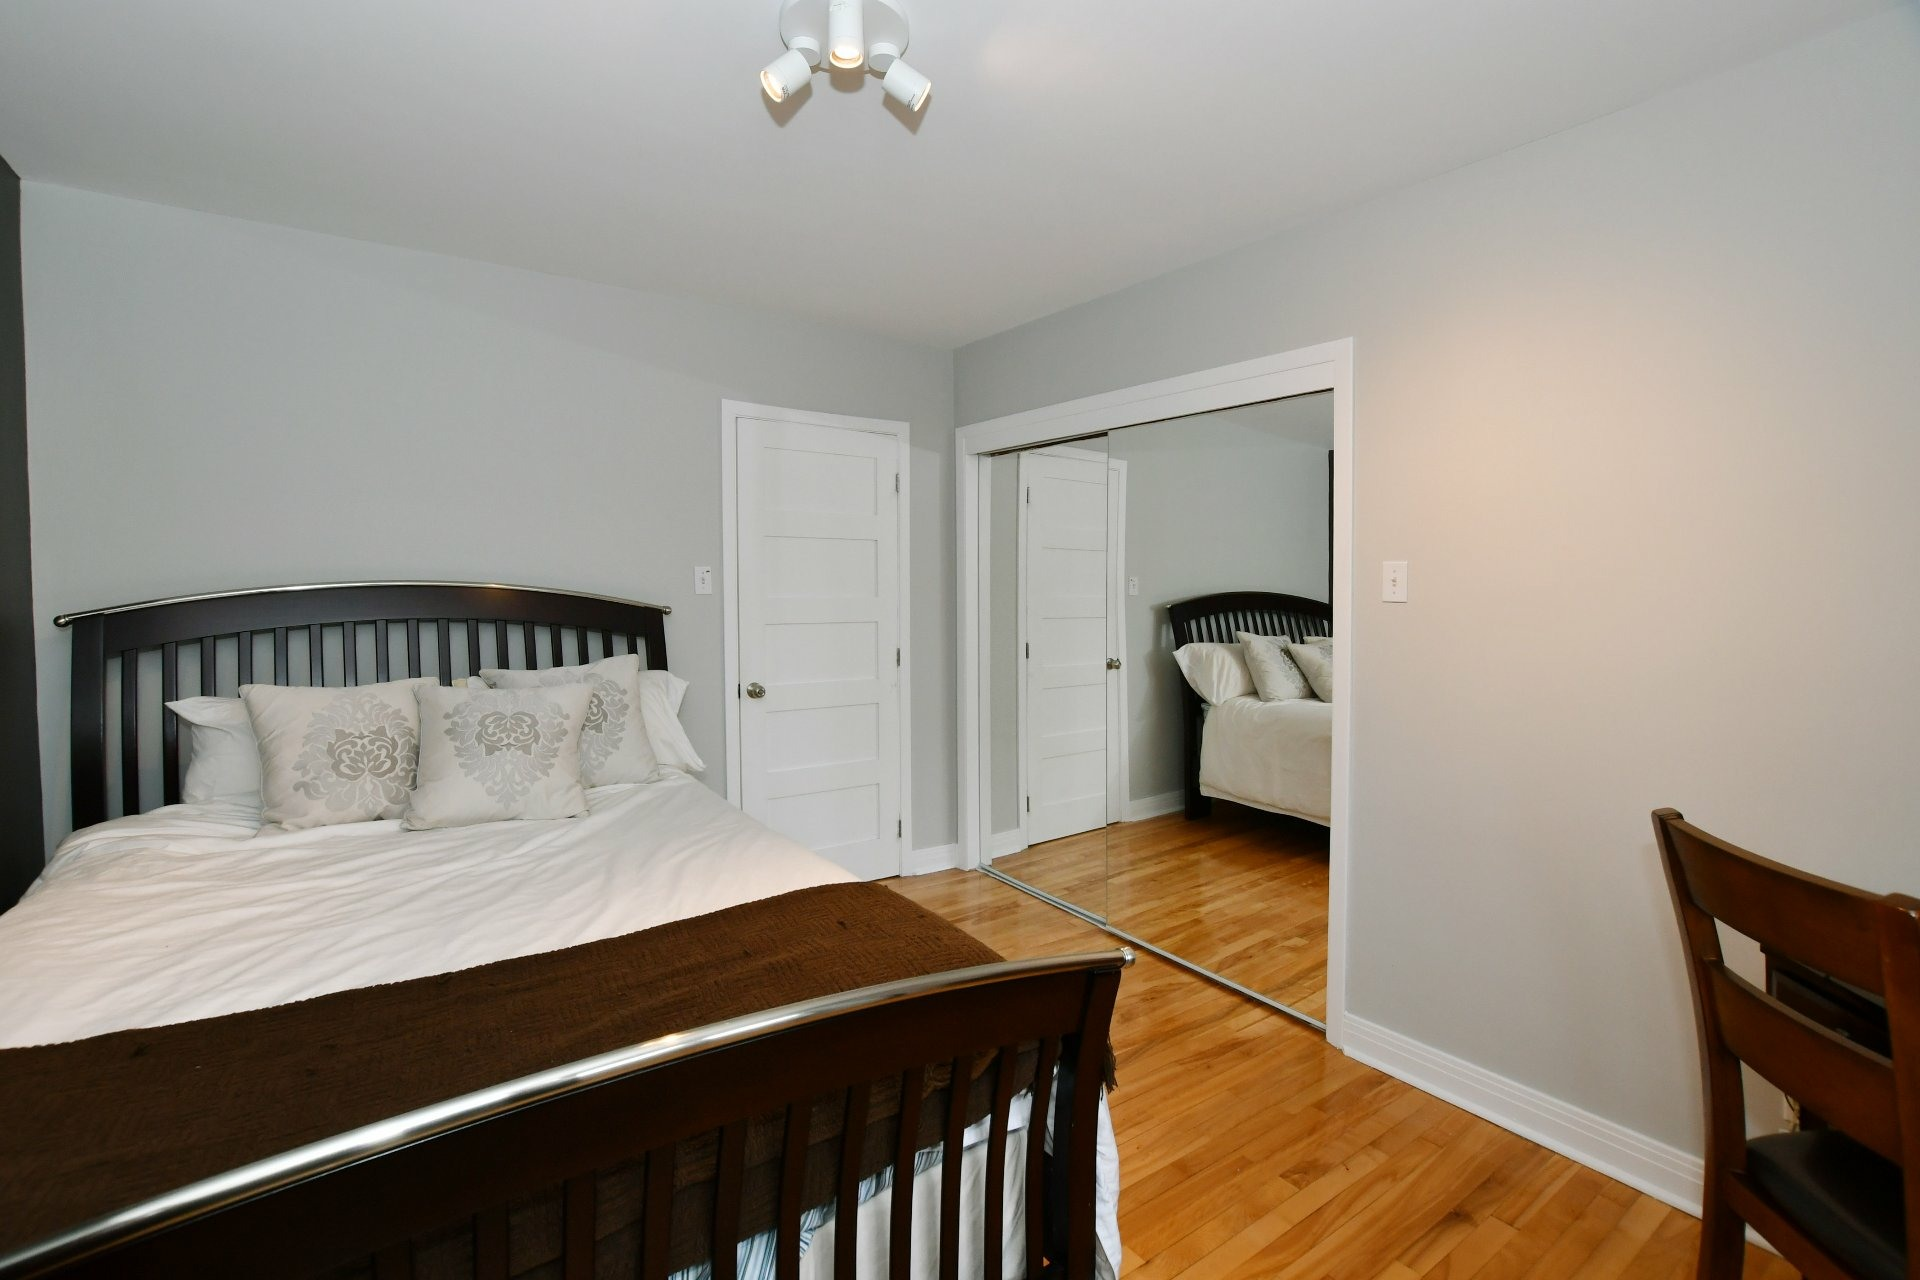 image 11 - House For sale Pointe-Claire - 10 rooms